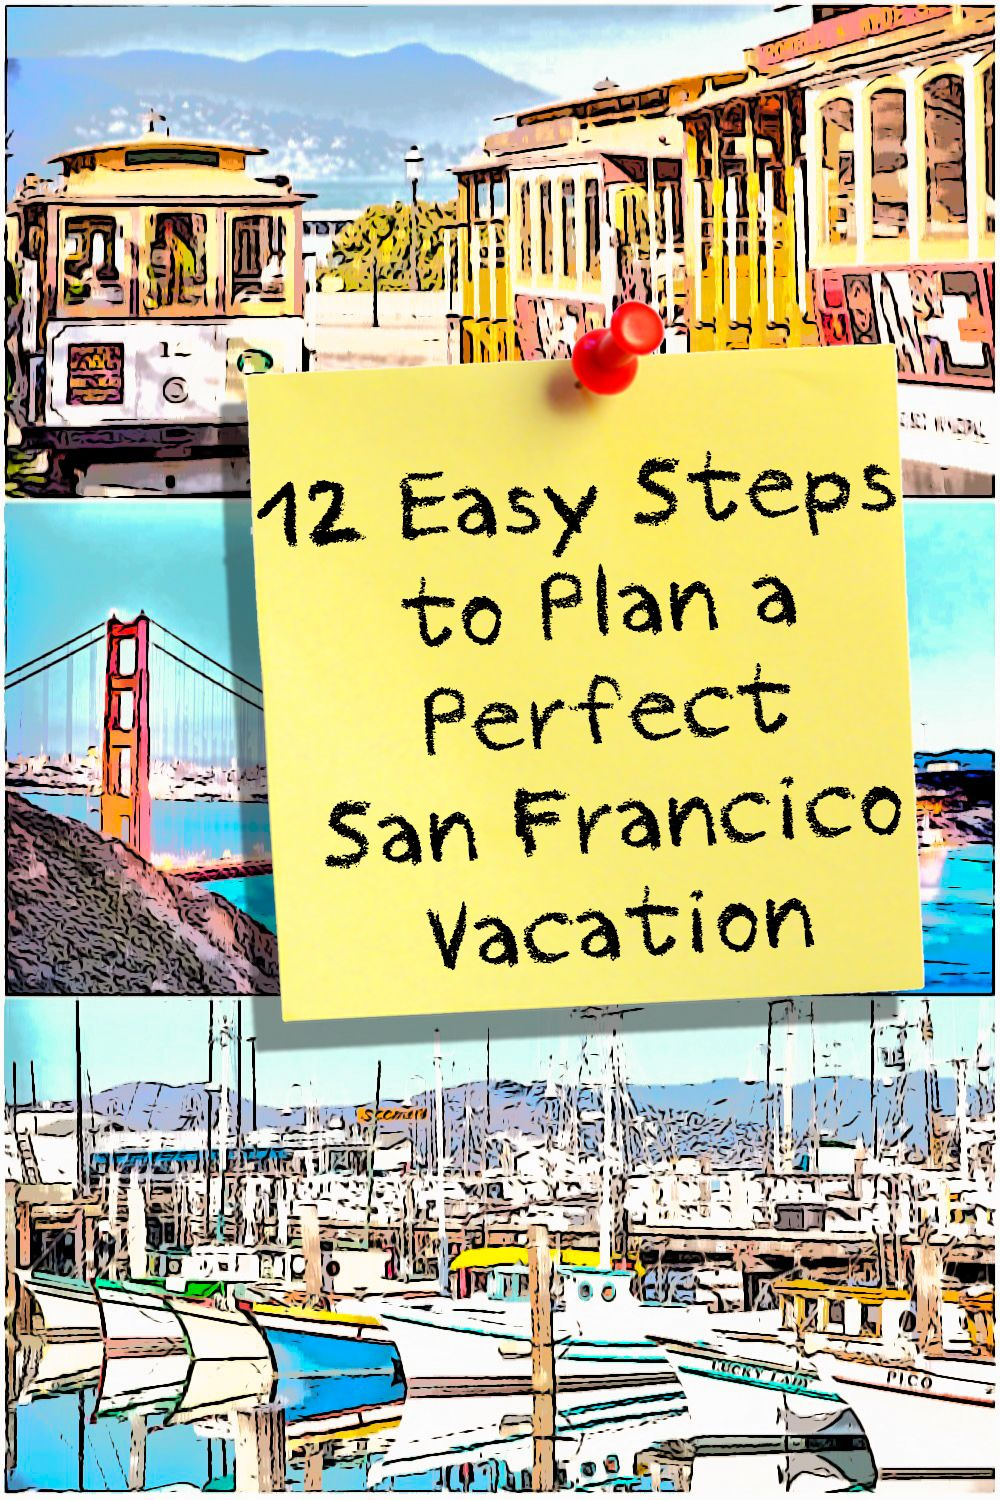 San Francisco Travel Planning Step by Step - Use these tried and true ideas to create the perfect vacation